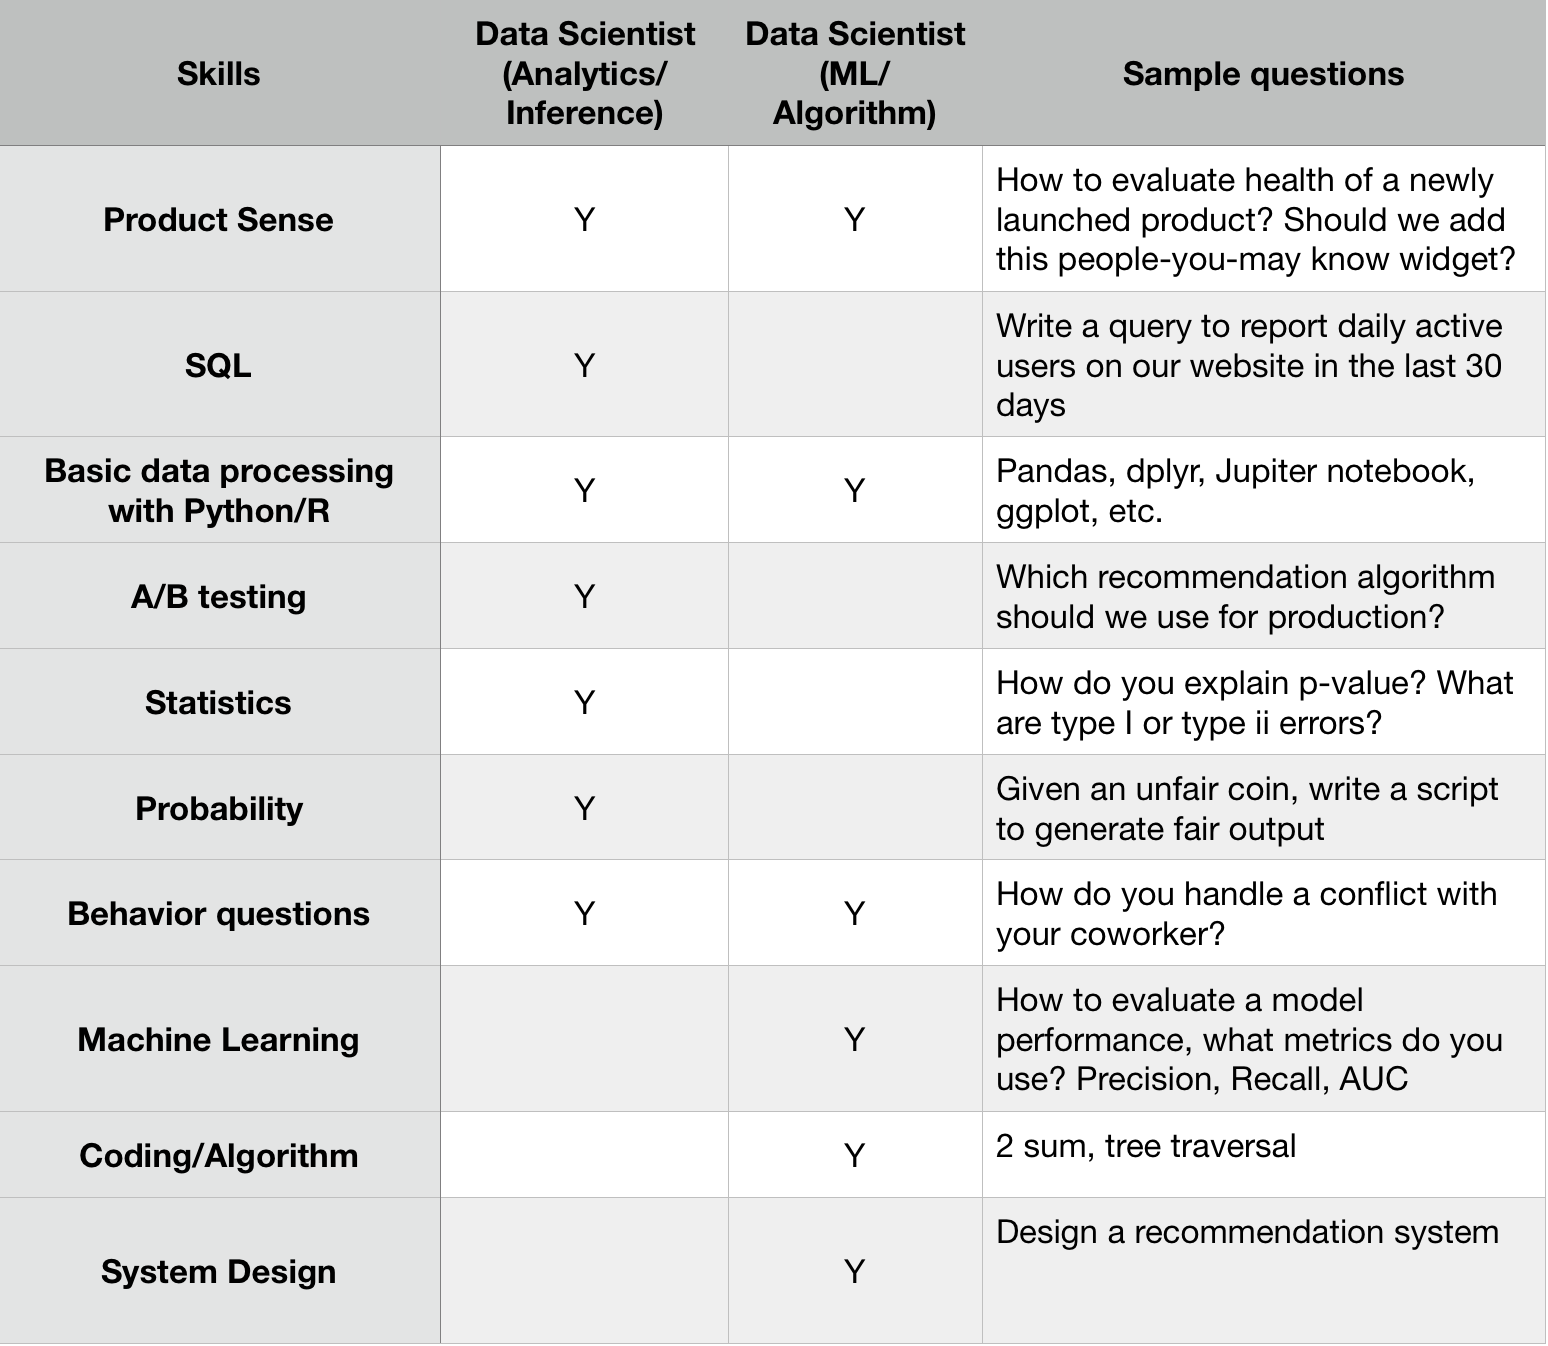 Skills comparisons for a hands-on data scientists: analytics track vs. machine learning track